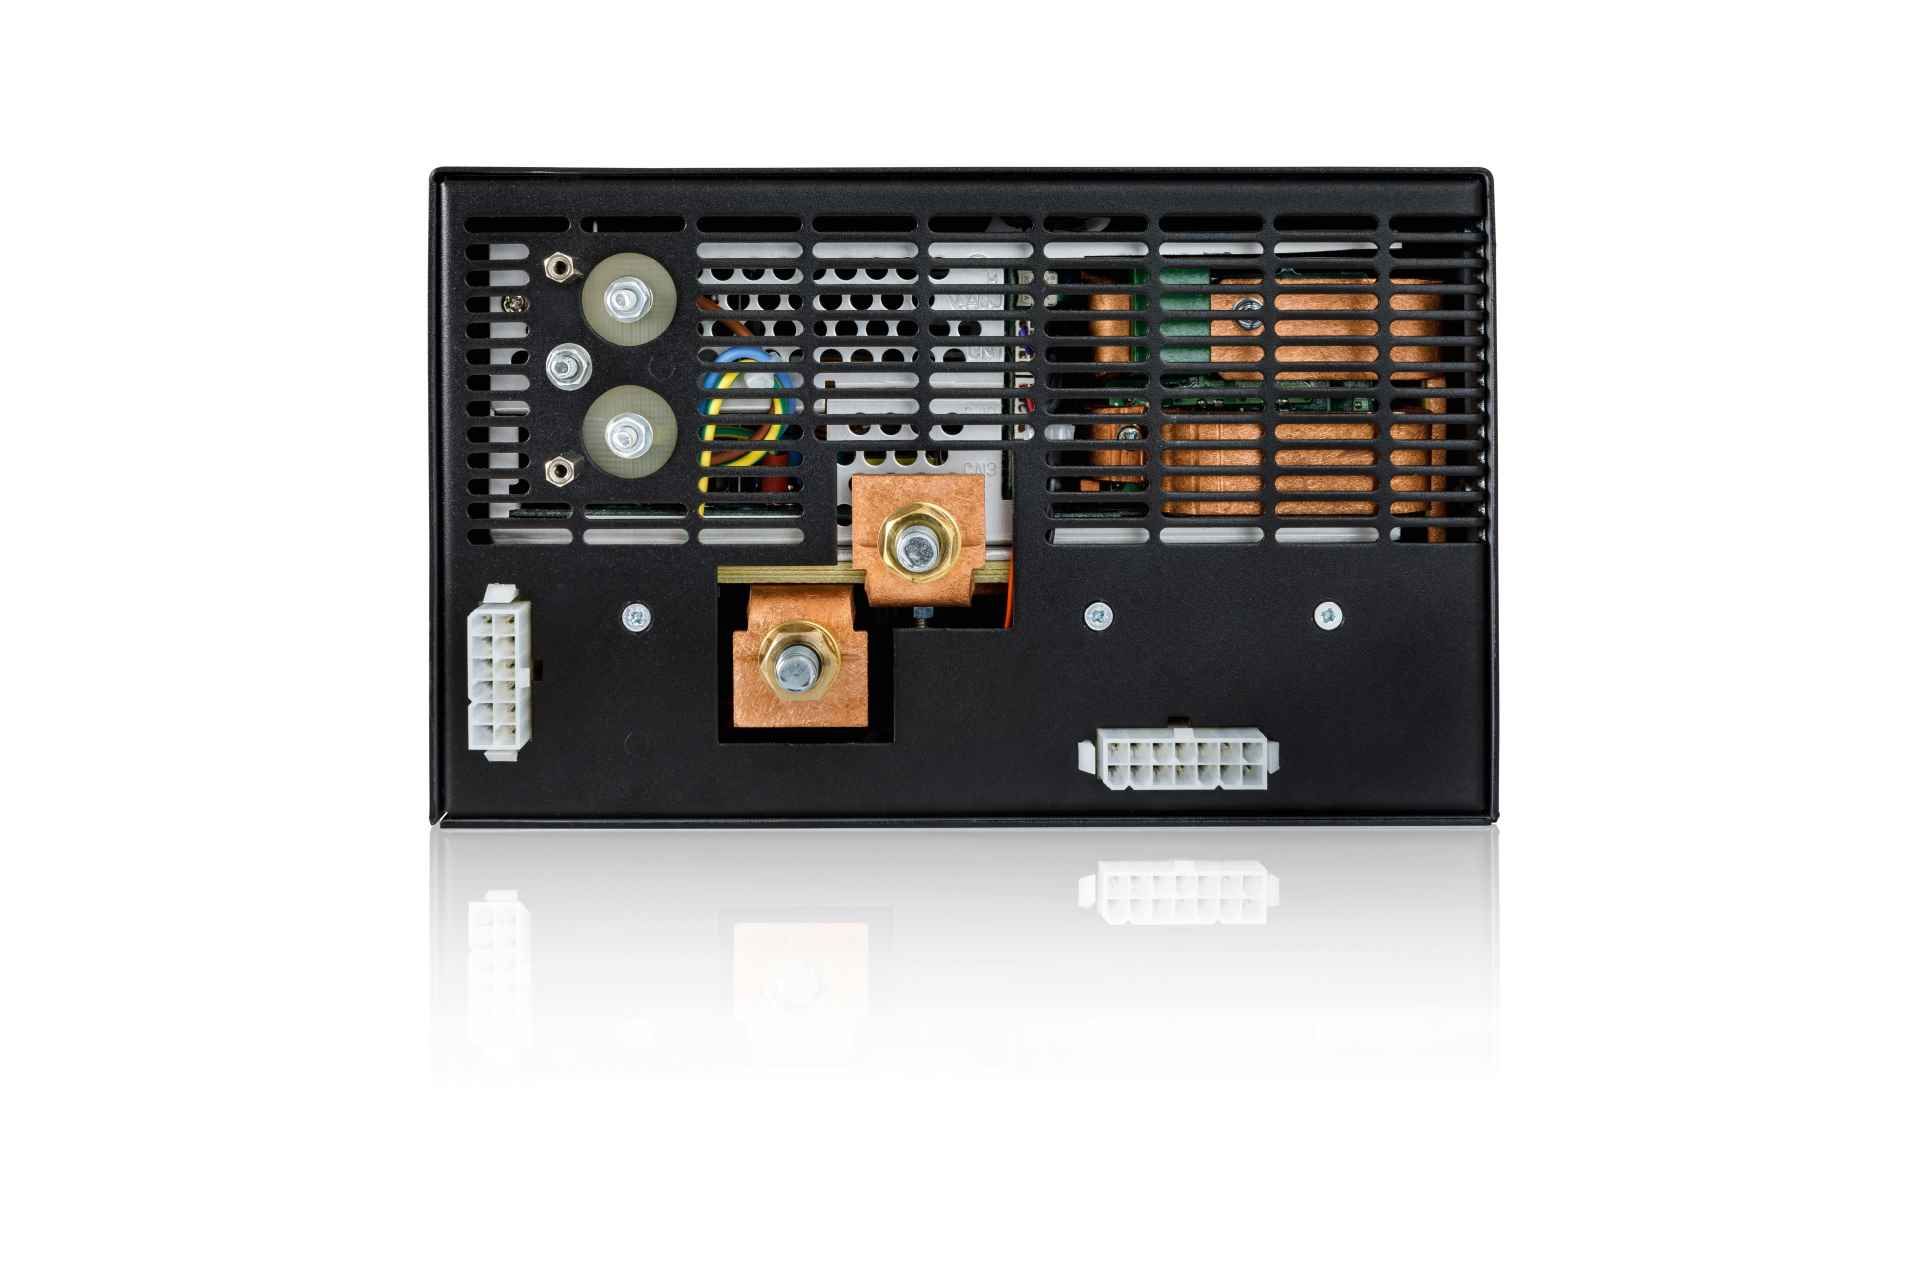 Artesyn N1204-1XXX power supply replacement